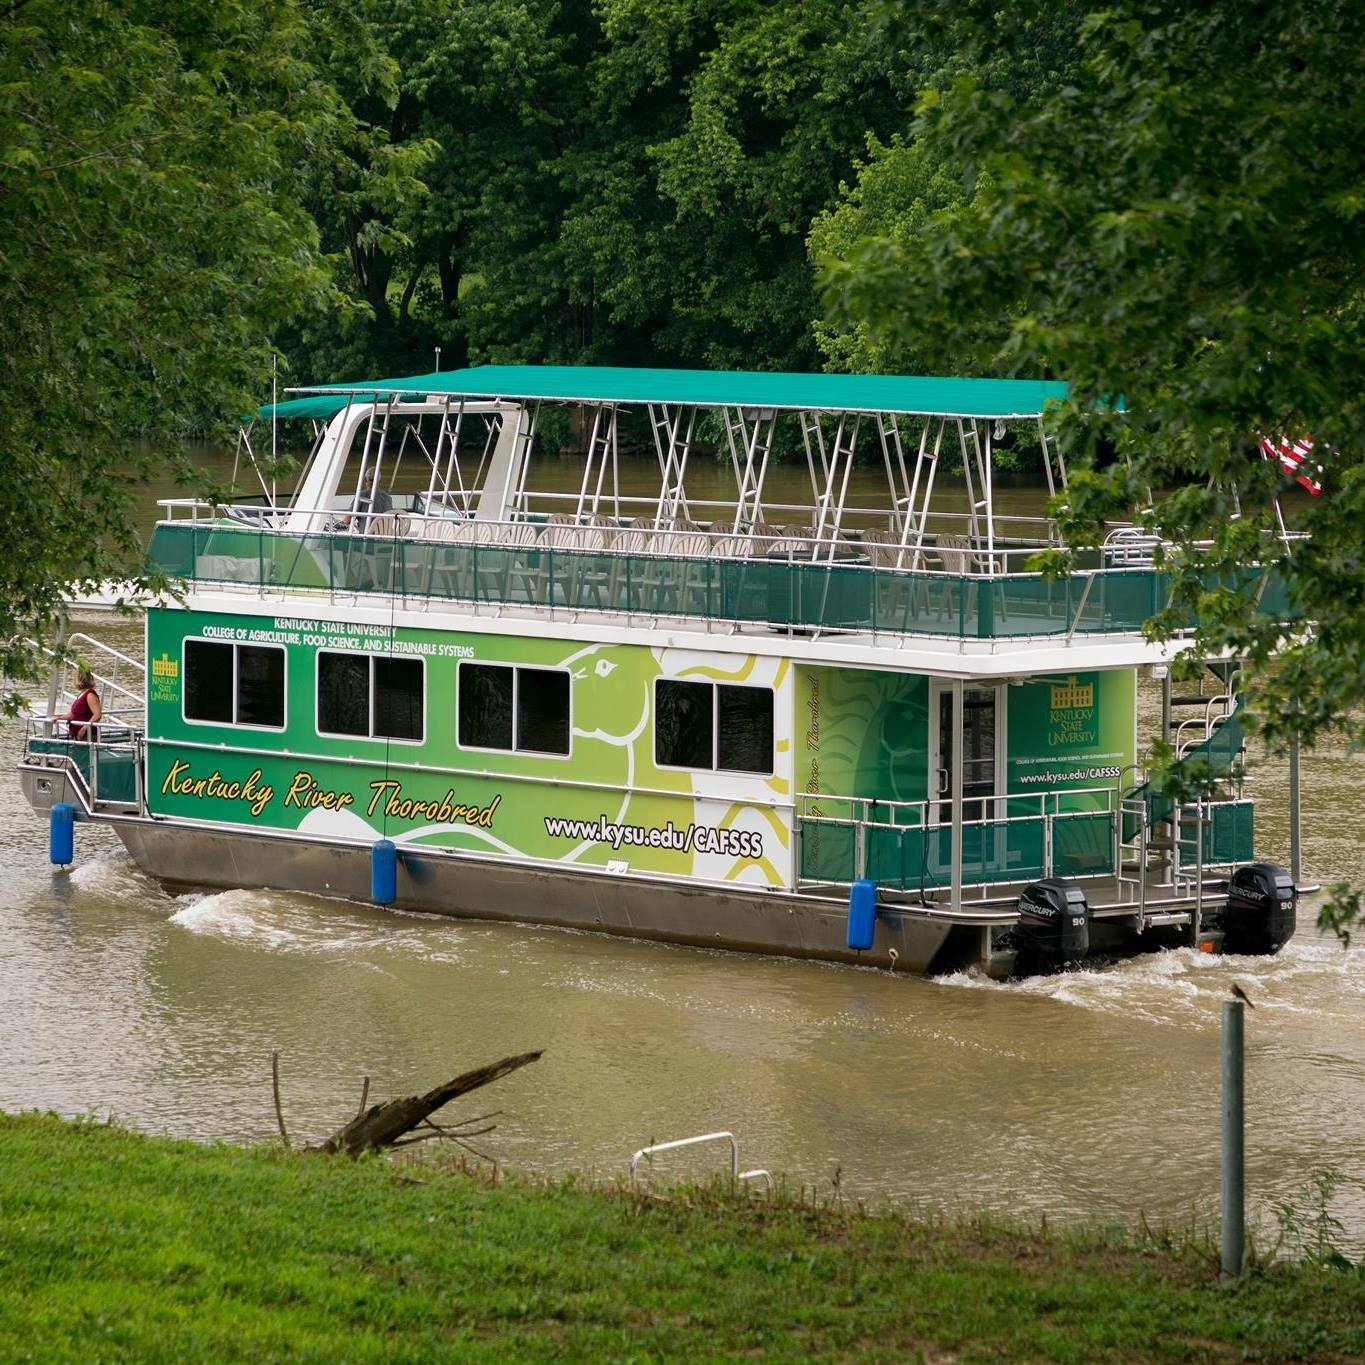 Kentucky State University Is Hosting Free Educational Boat Tours Along the Kentucky River